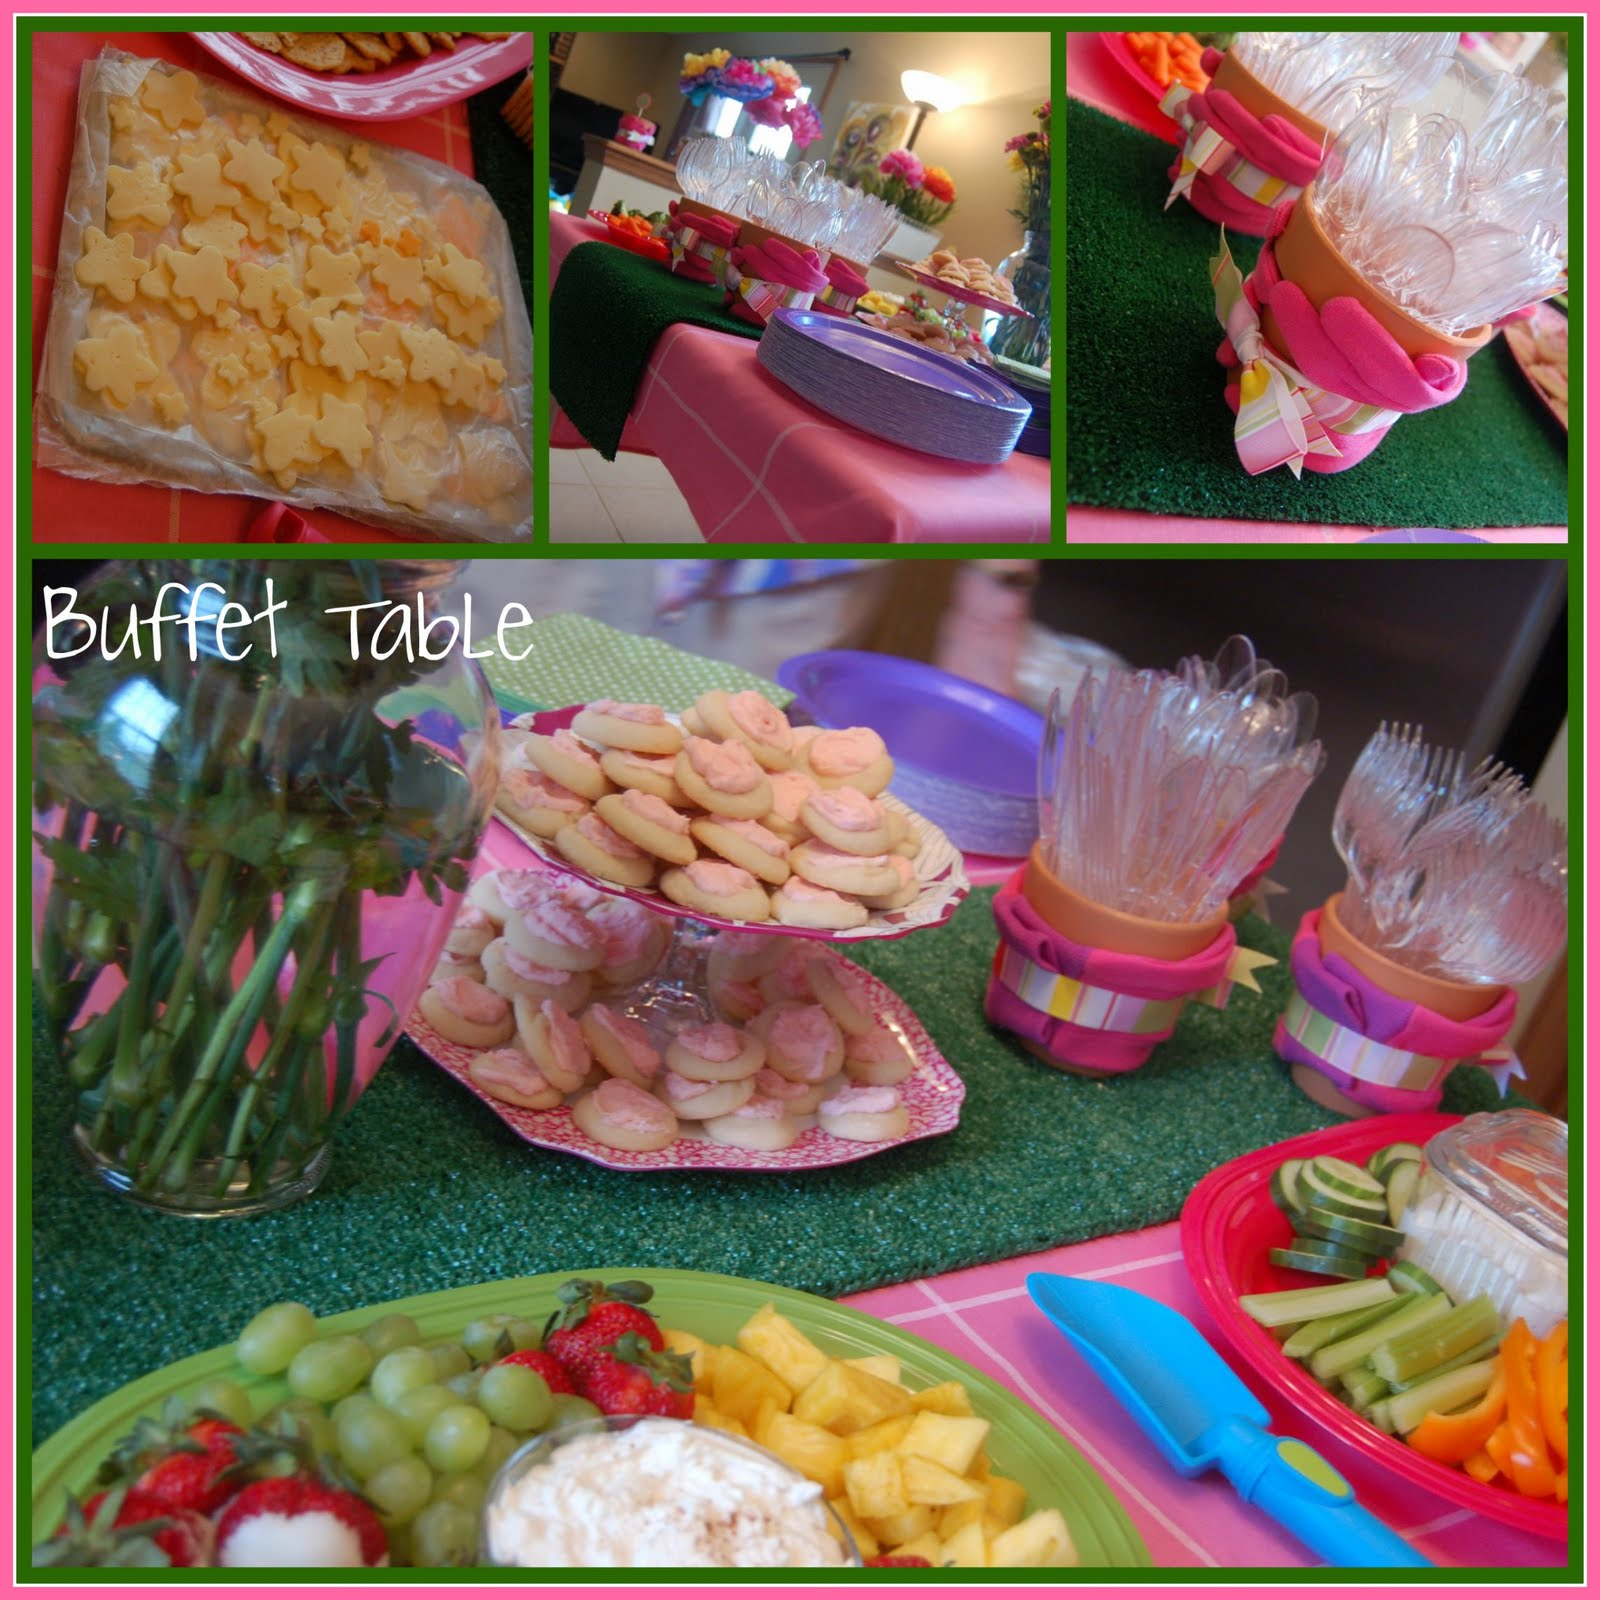 Birthday Party Buffet Table: We Used A Bright Green Watering Can To Hold Our Drinking